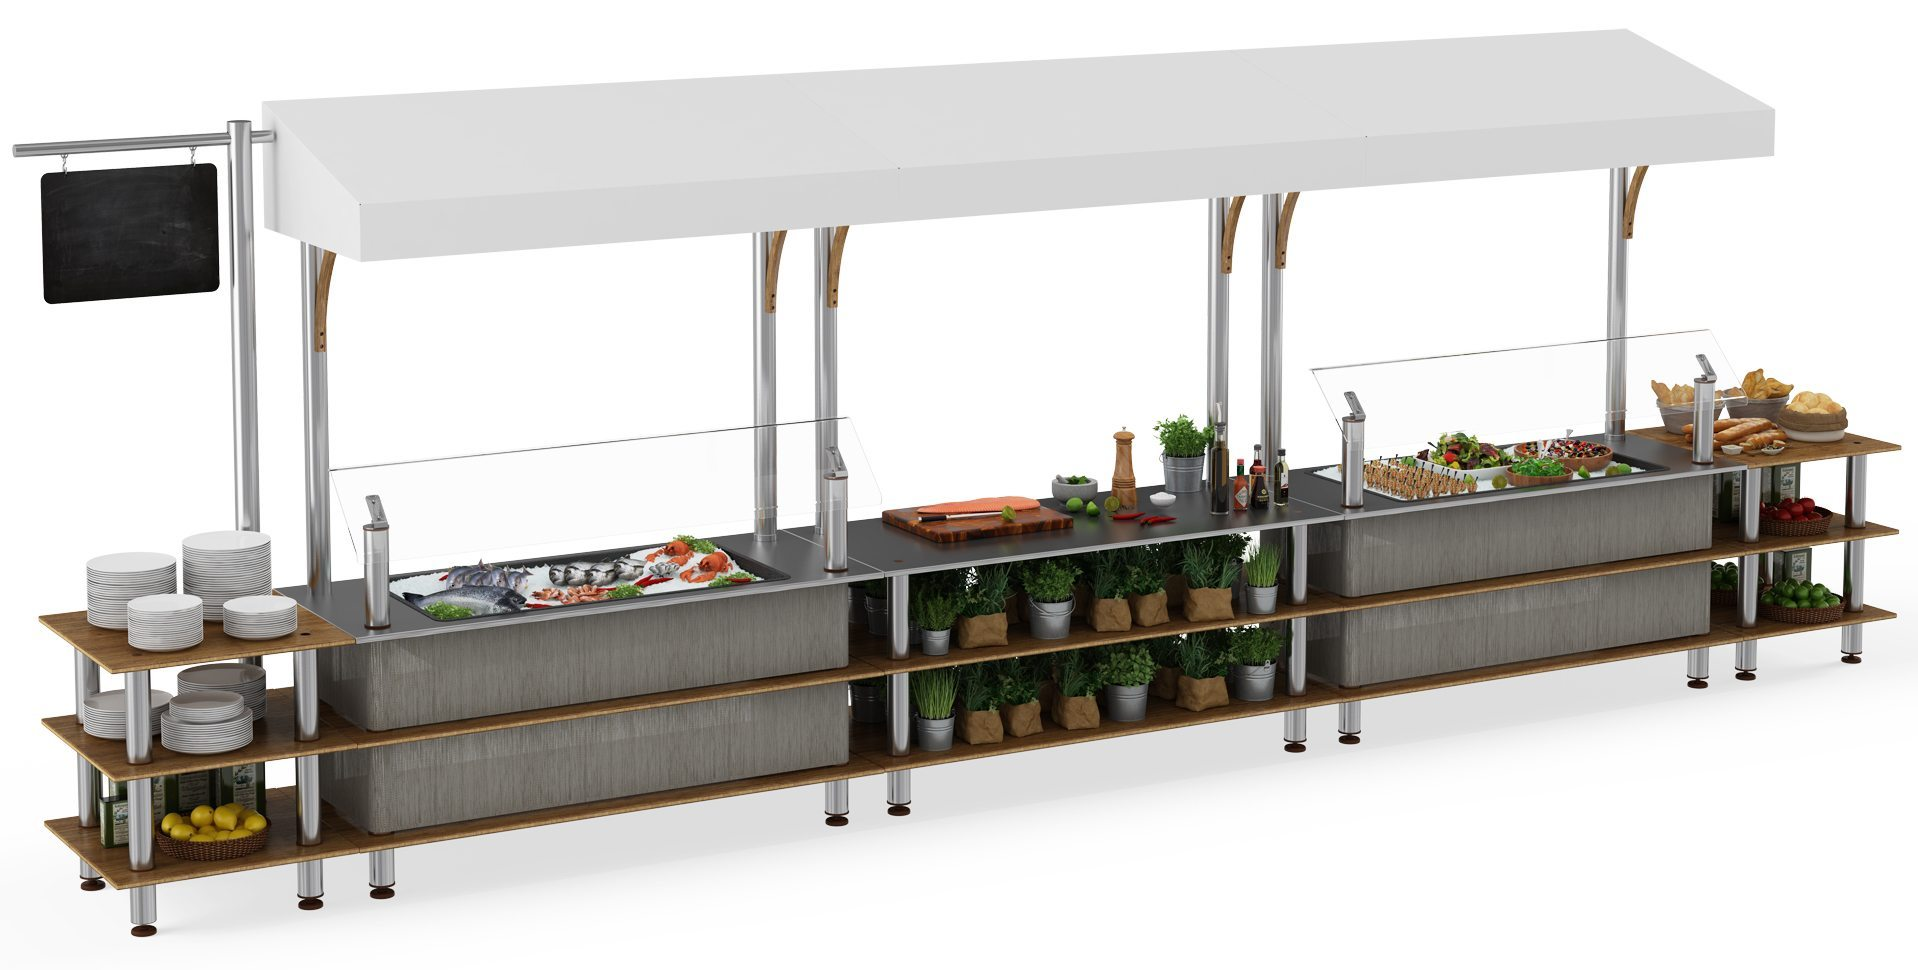 Maayan-Golan_Architectural-Visualization_product-visualization_Professional-Buffet-Solutions_food-stand_Mogogo_02